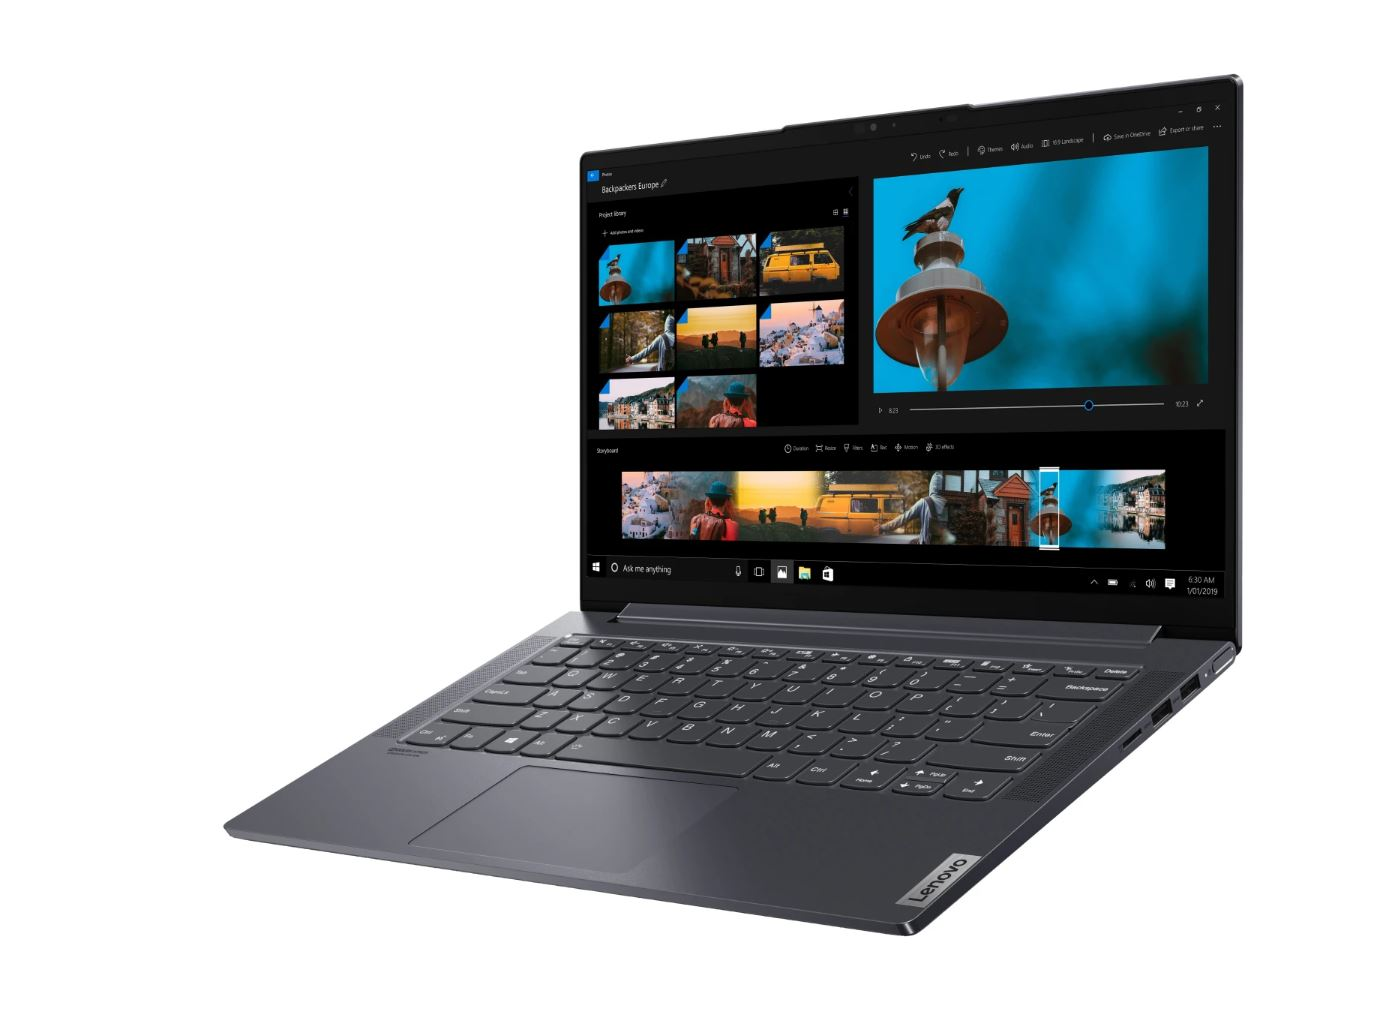 Deal Alert Lenovo Ideapad Slim 7 Laptop With Intel Core I7 16gb Ram And 512gb Ssd Available For 899 Mspoweruser